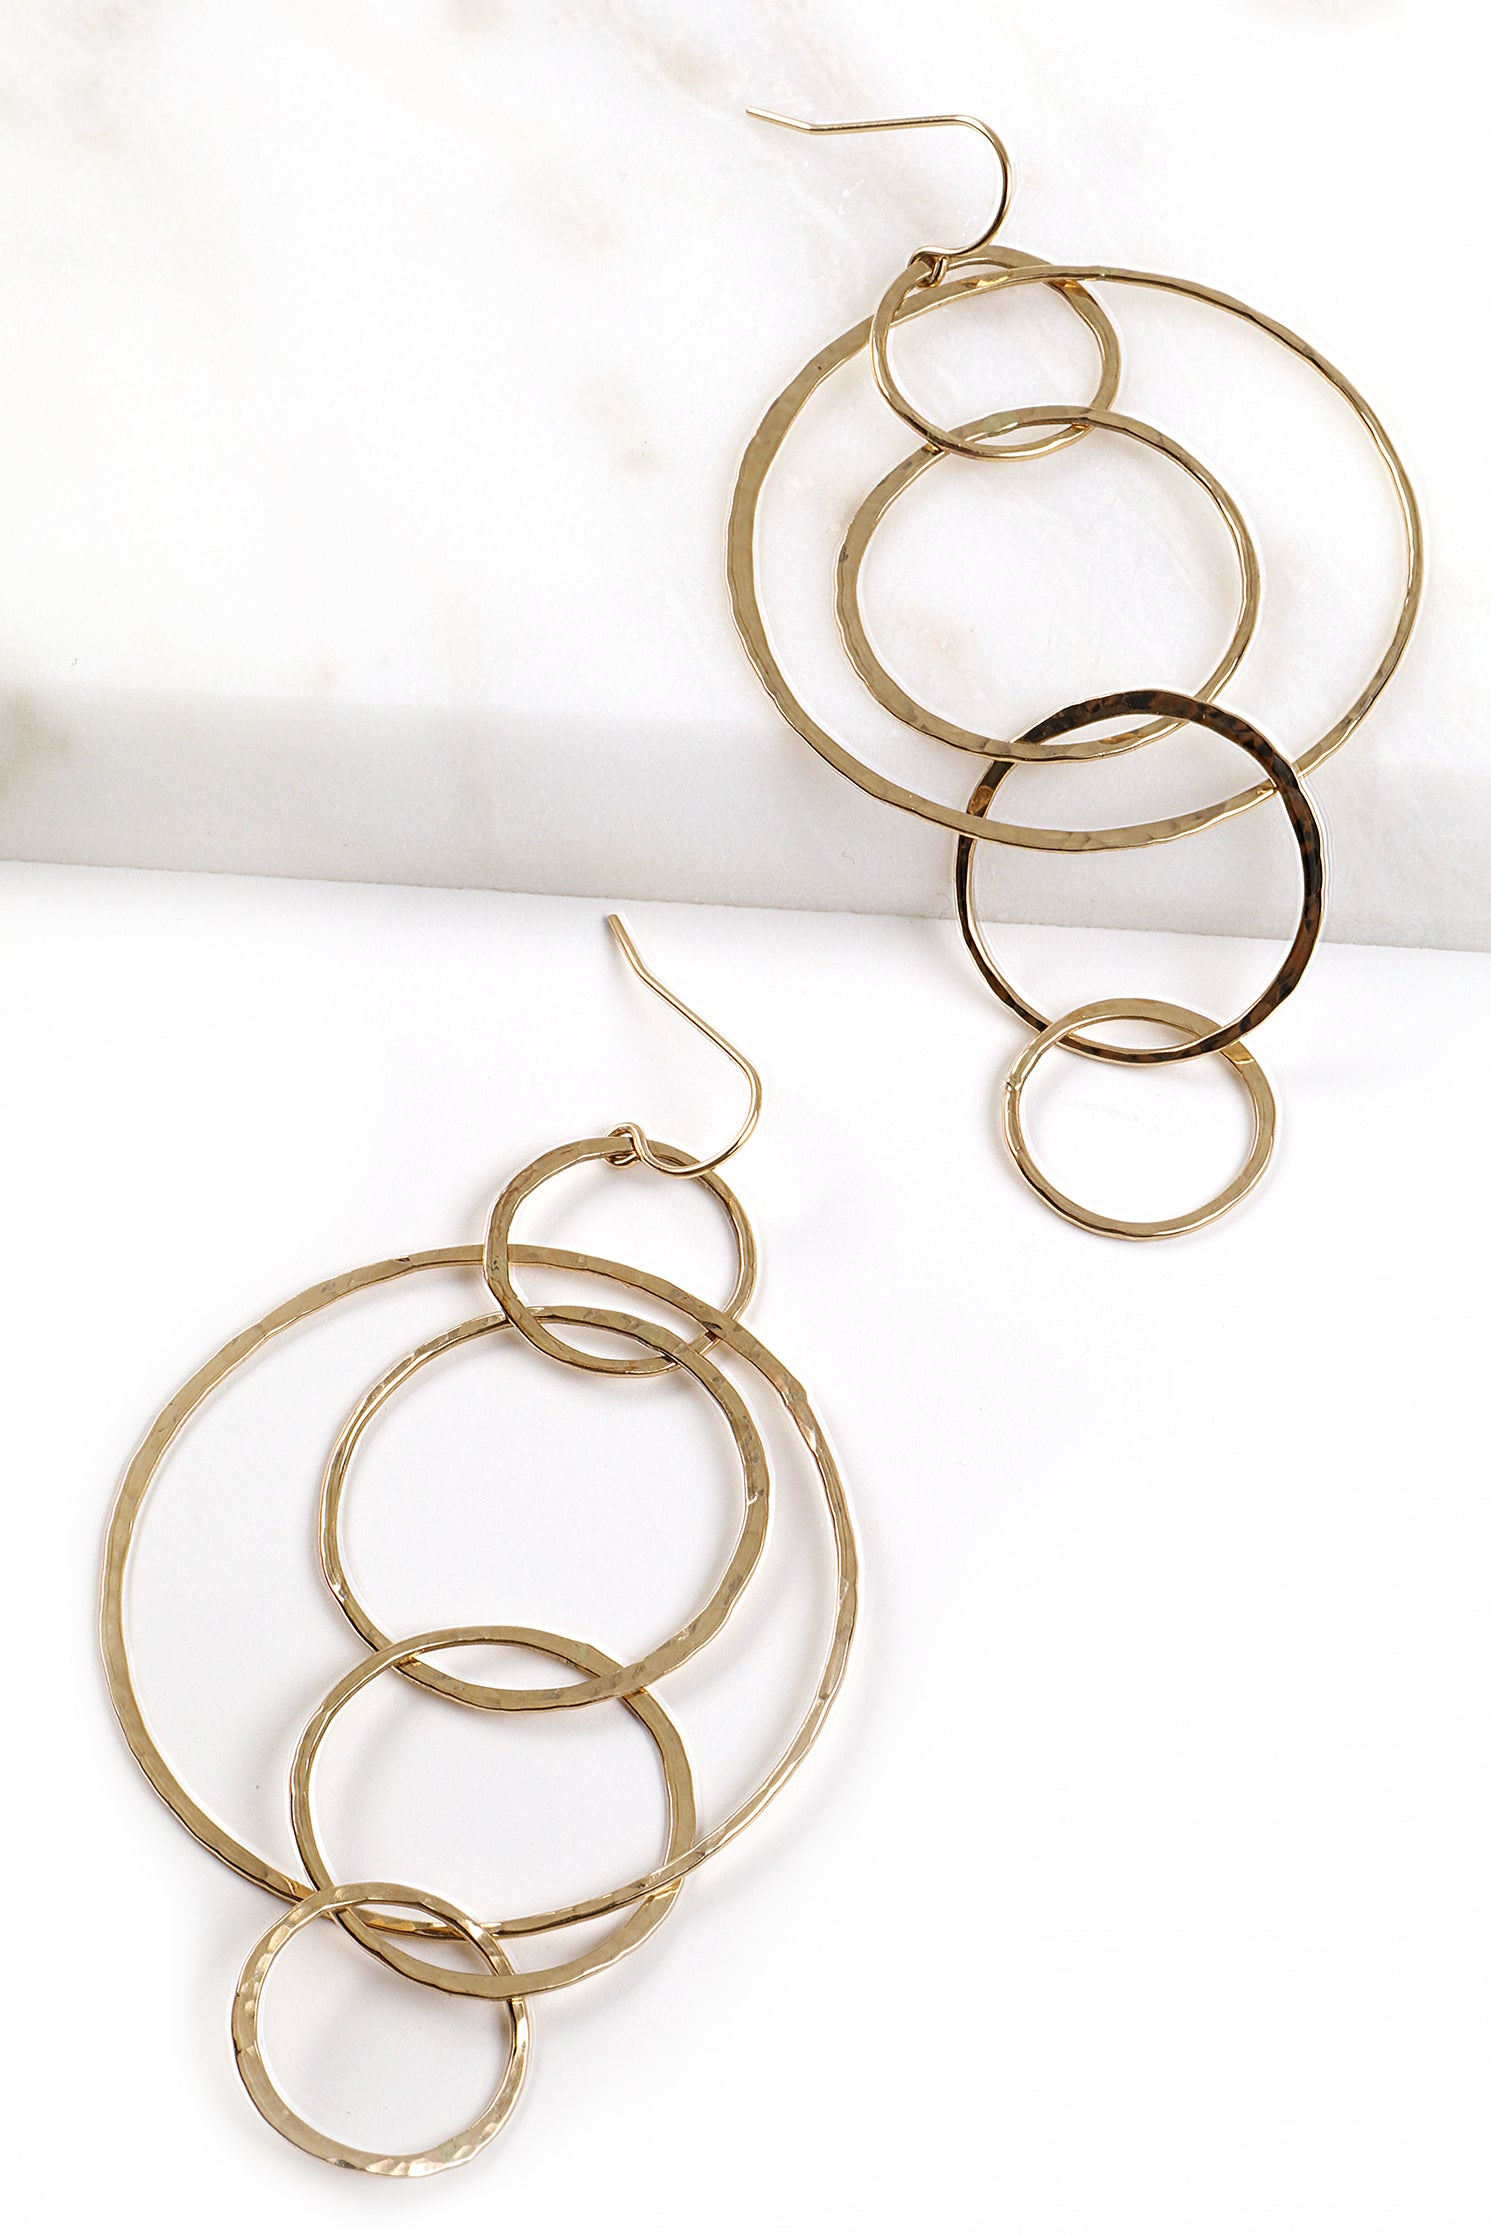 Hammered Circular Earrings